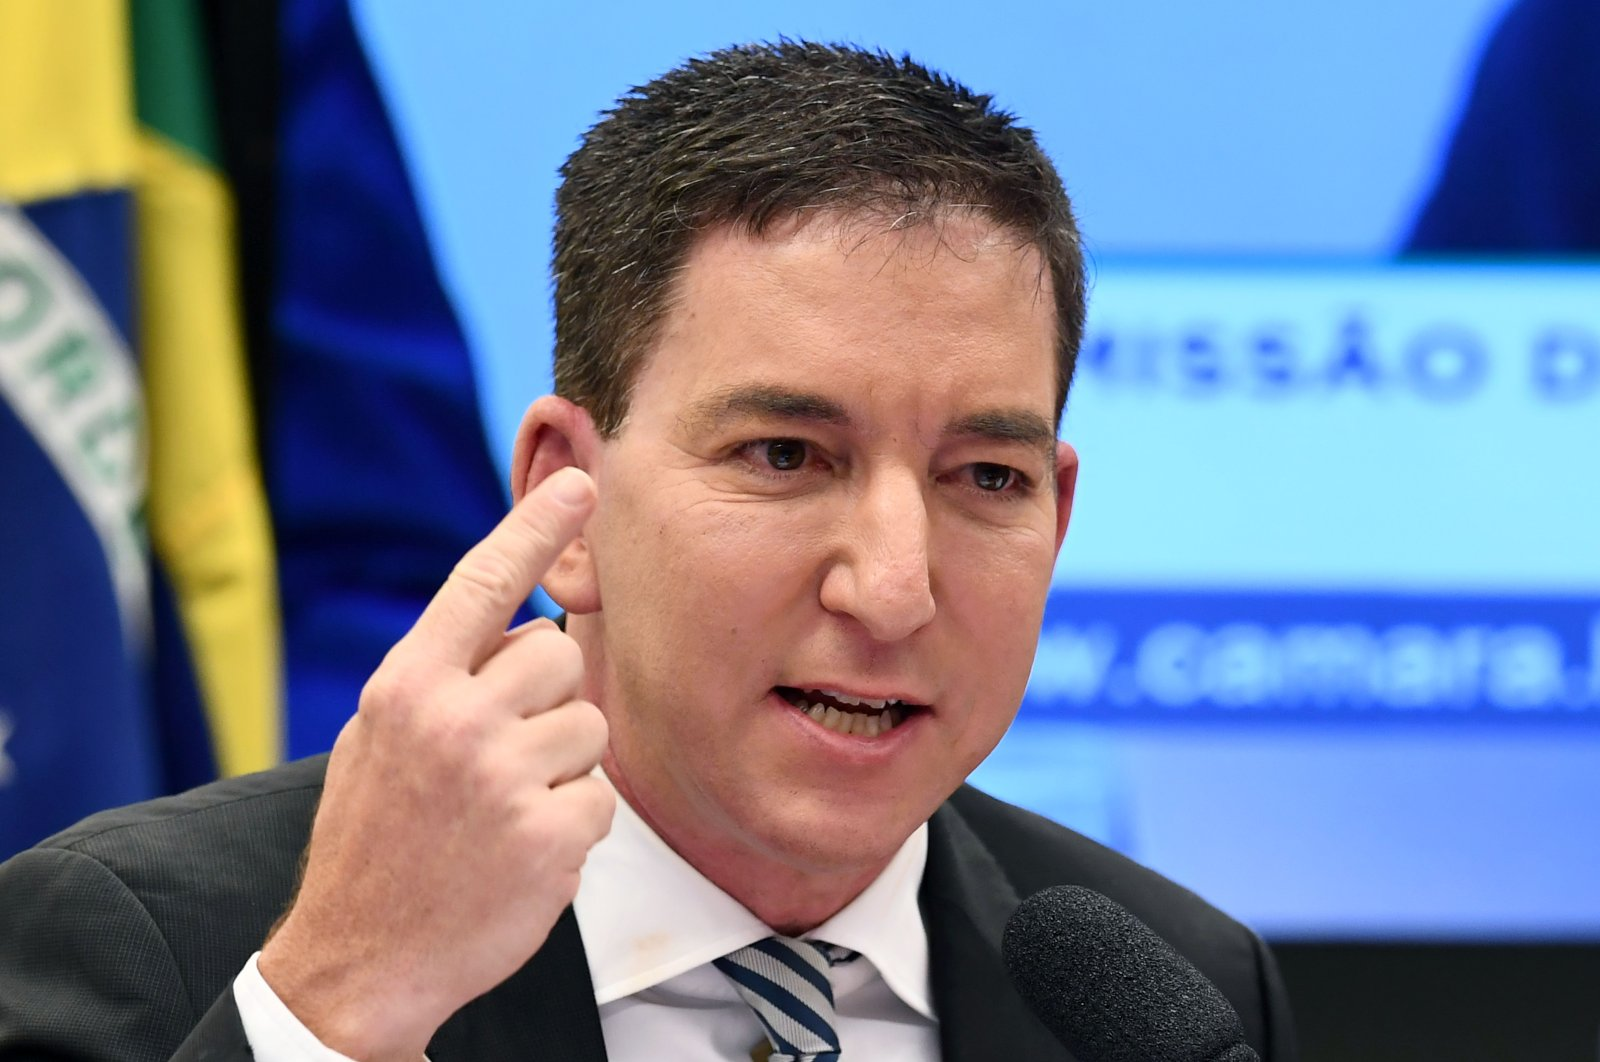 In this June 25, 2019 file photo, U.S. journalist Glenn Greenwald, founder and editor of The Intercept website, speaks during a hearing at the Lower House's Human Rights Commission in Brasilia, Brazil. (AFP Photo)